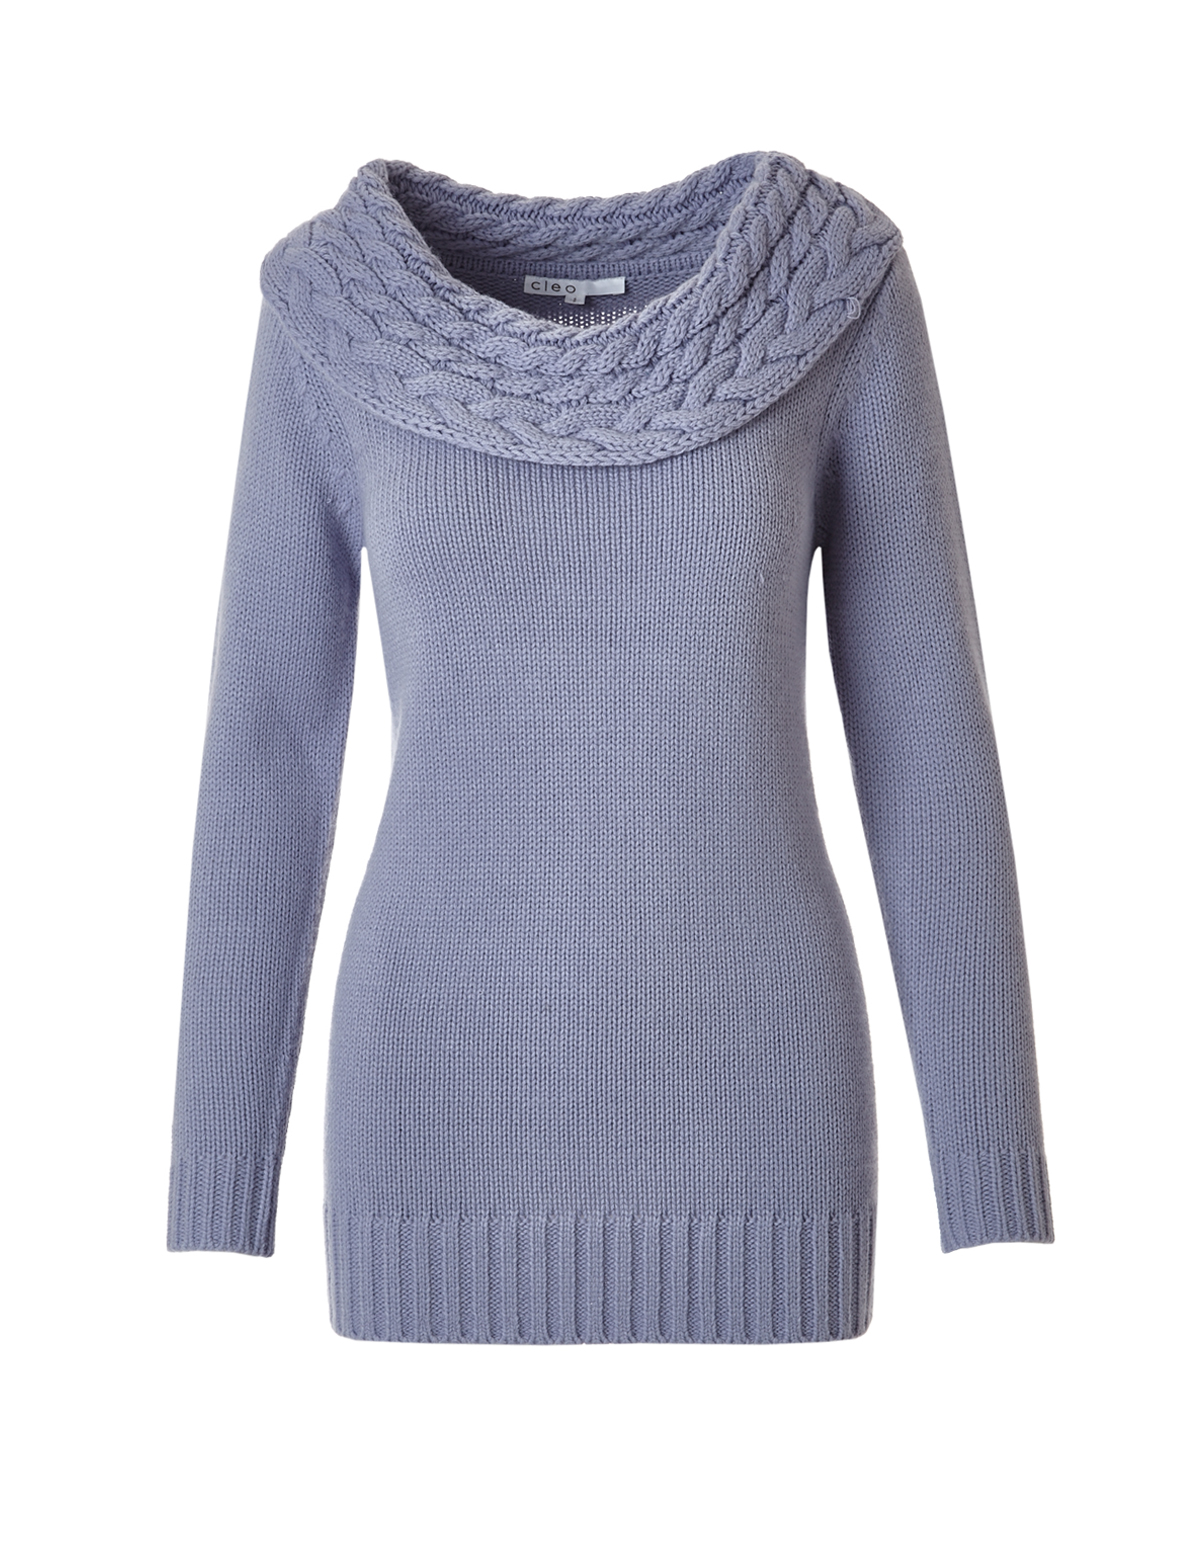 Lilac Marilyn Neck Cable Tunic Sweater | Cleo